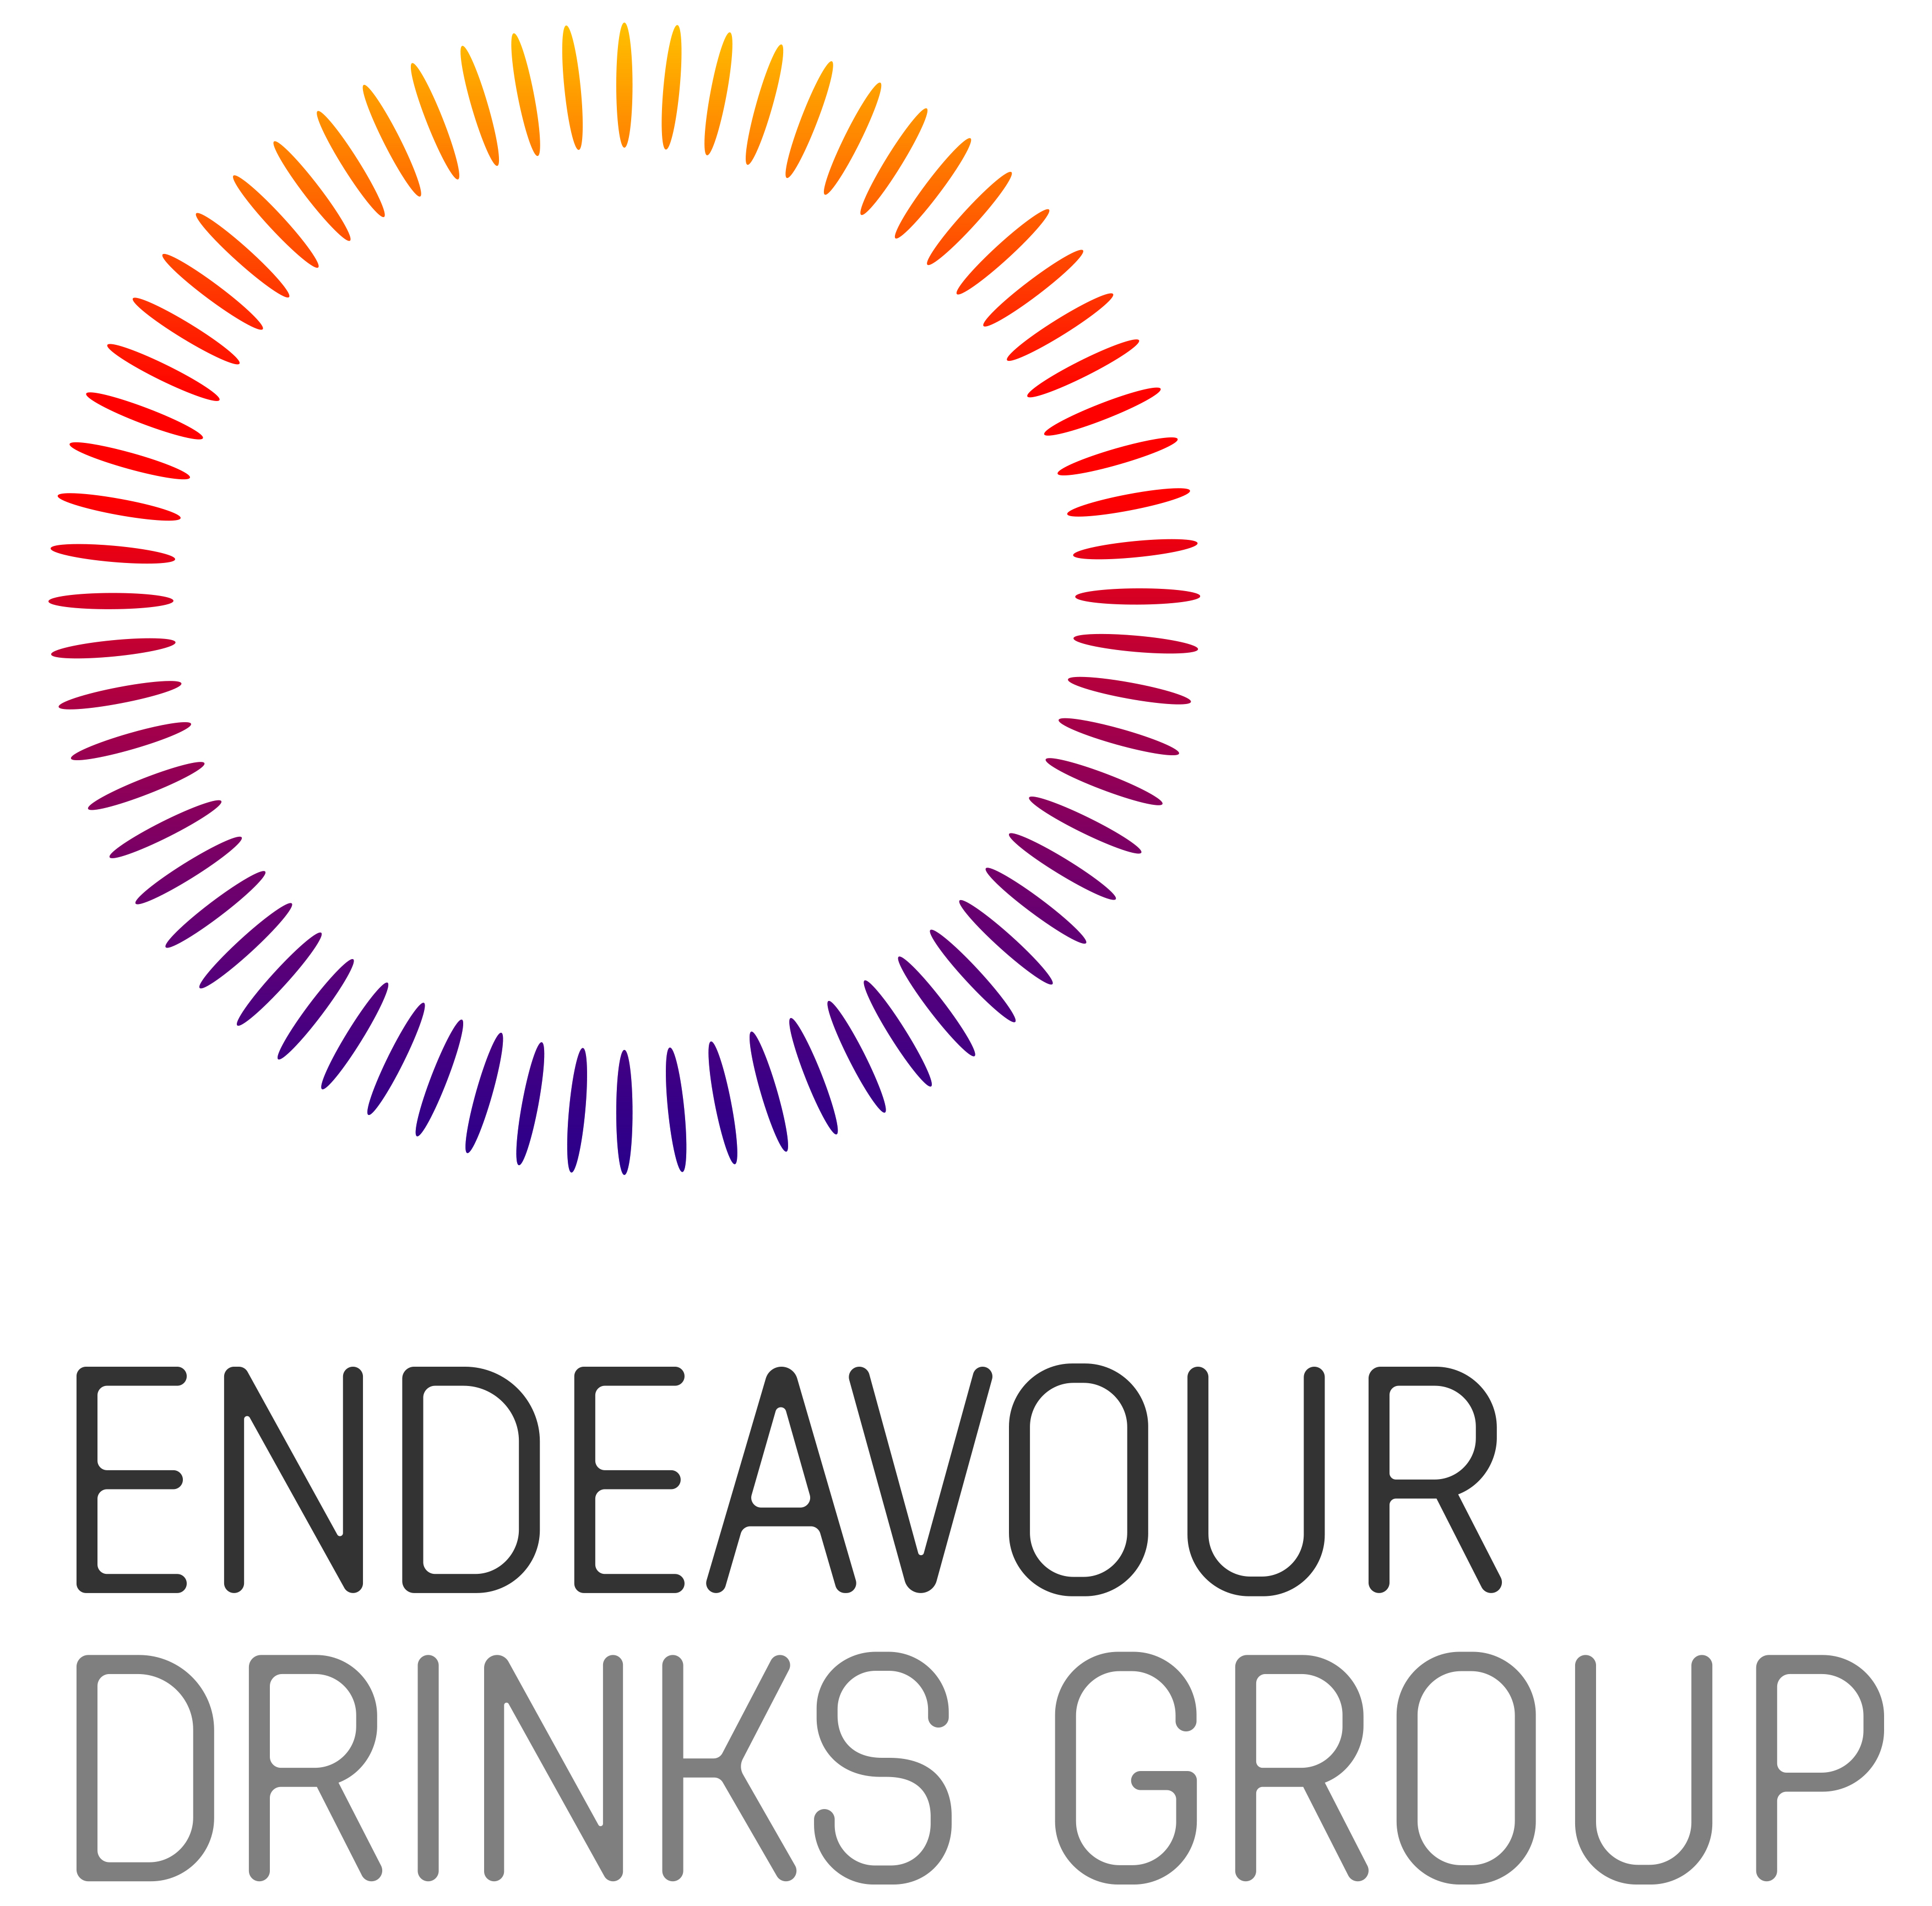 Endeavour Drinks Group Logo